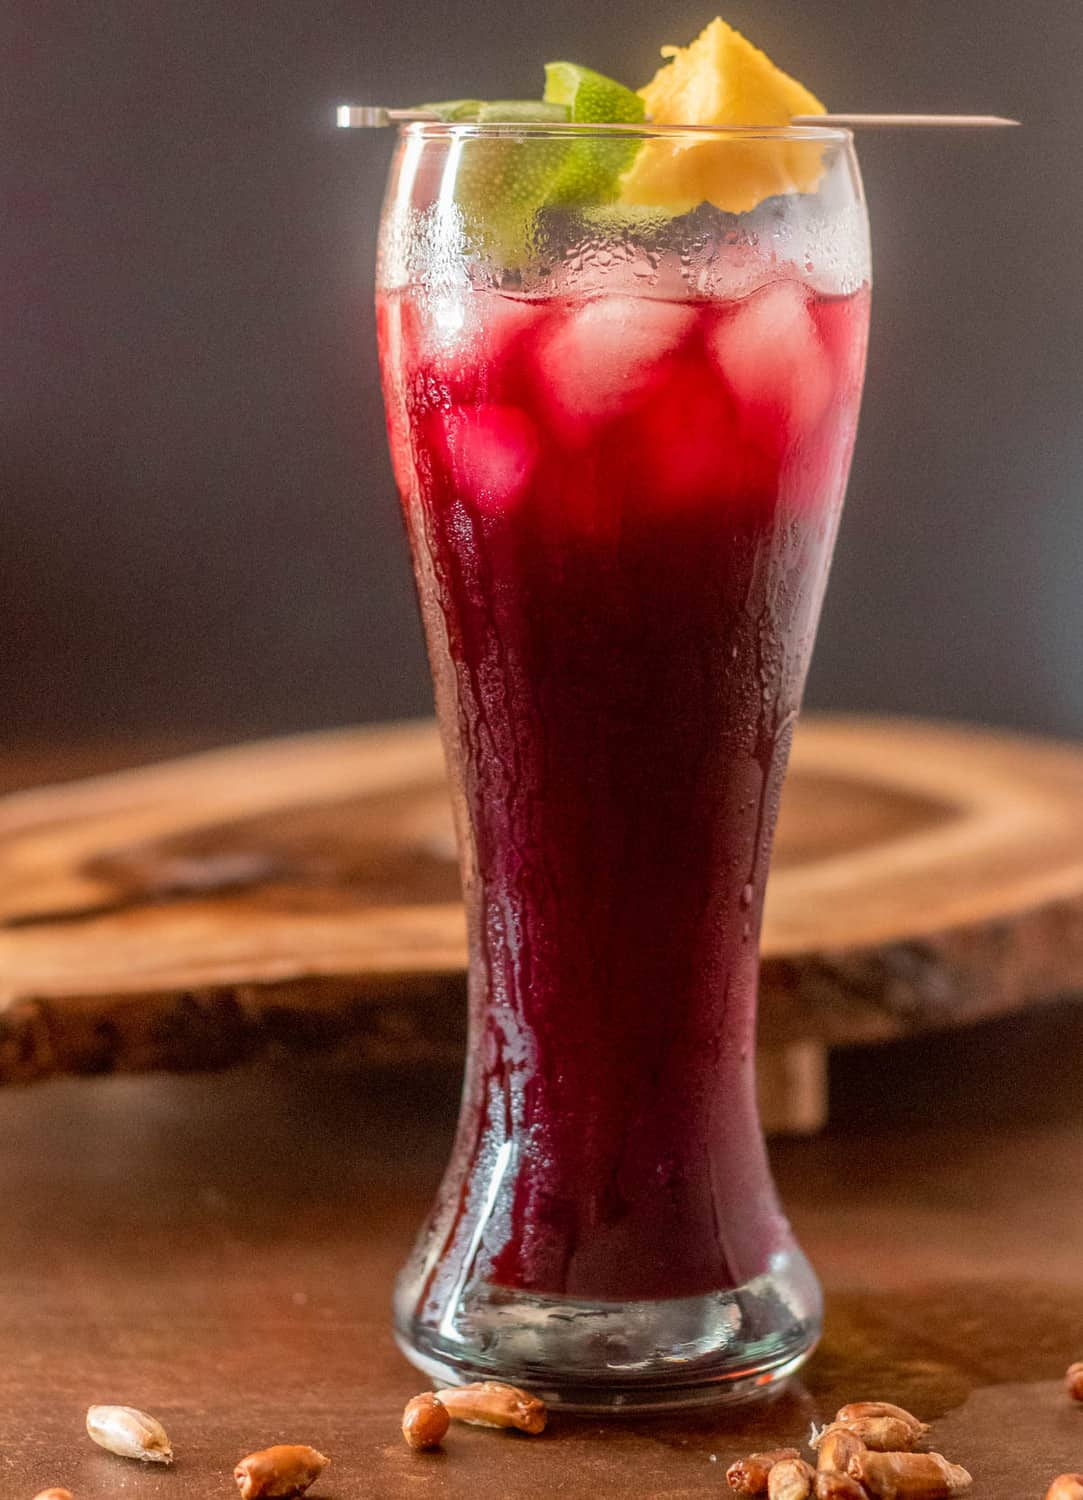 A close up of Peruvian chicha morada (purple corn drink) in a tall pilsner glass with lime twist and pineapple wedge.